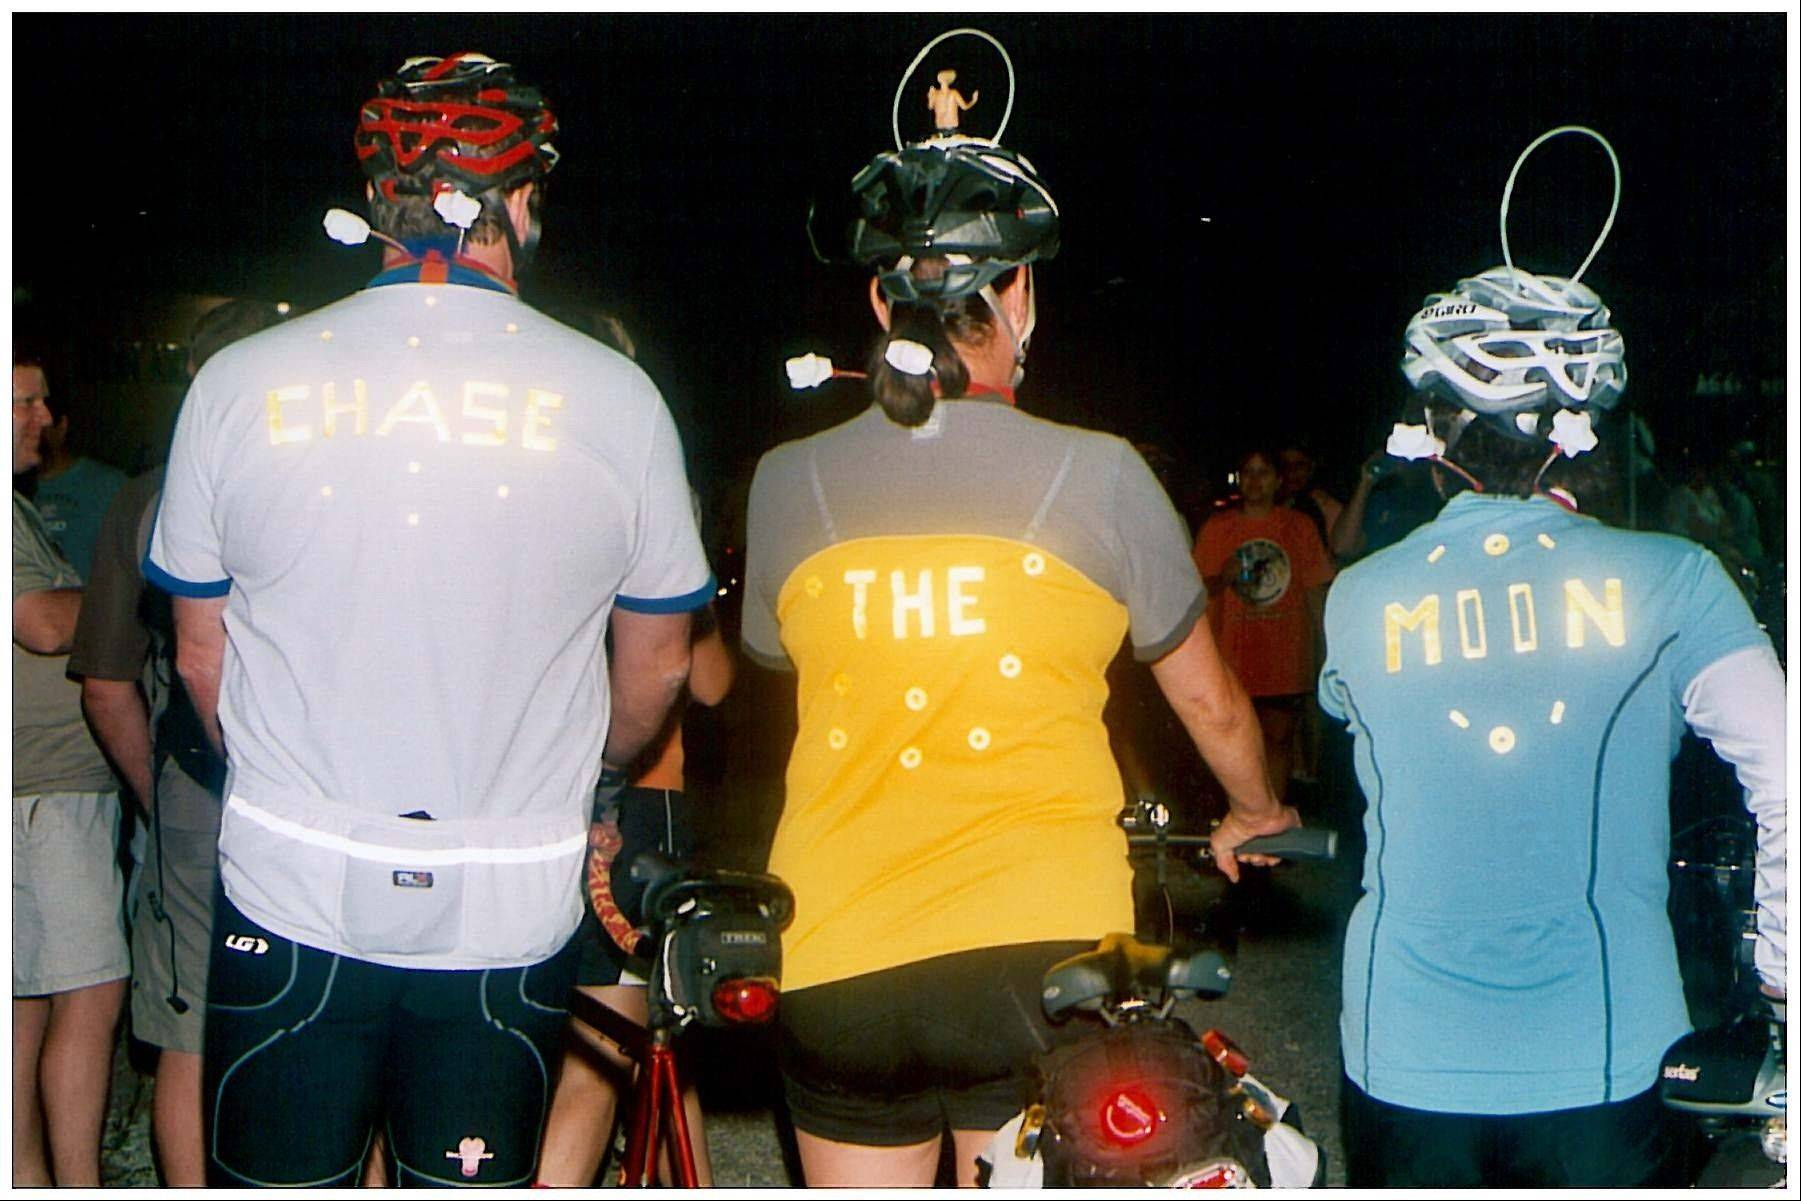 The Conservation Foundation's Chase the Moon Midnight Bike Ride starts in Warrenville and eventually weaves its way through the grounds of Fermi National Accelerator Laboratory.